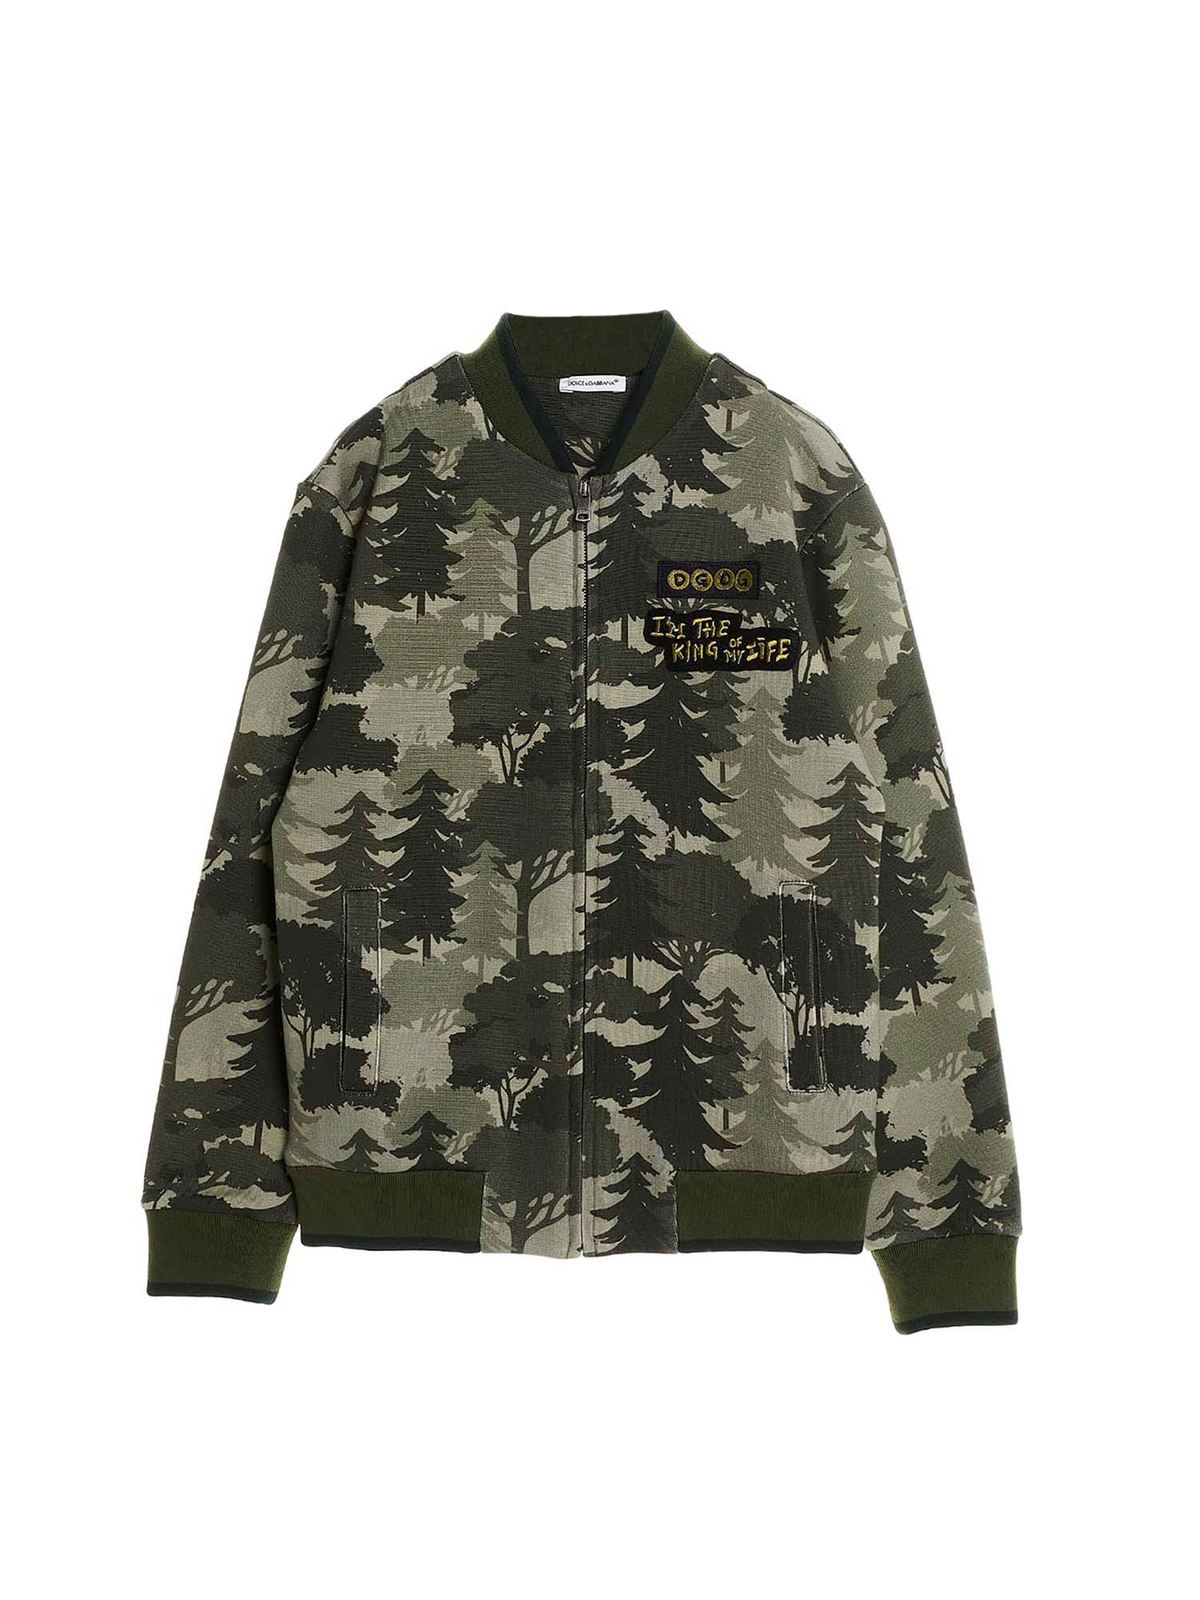 Dolce & Gabbana Jr Cottons FOREST PRINT ZIP SWEATSHIRT IN GREEN